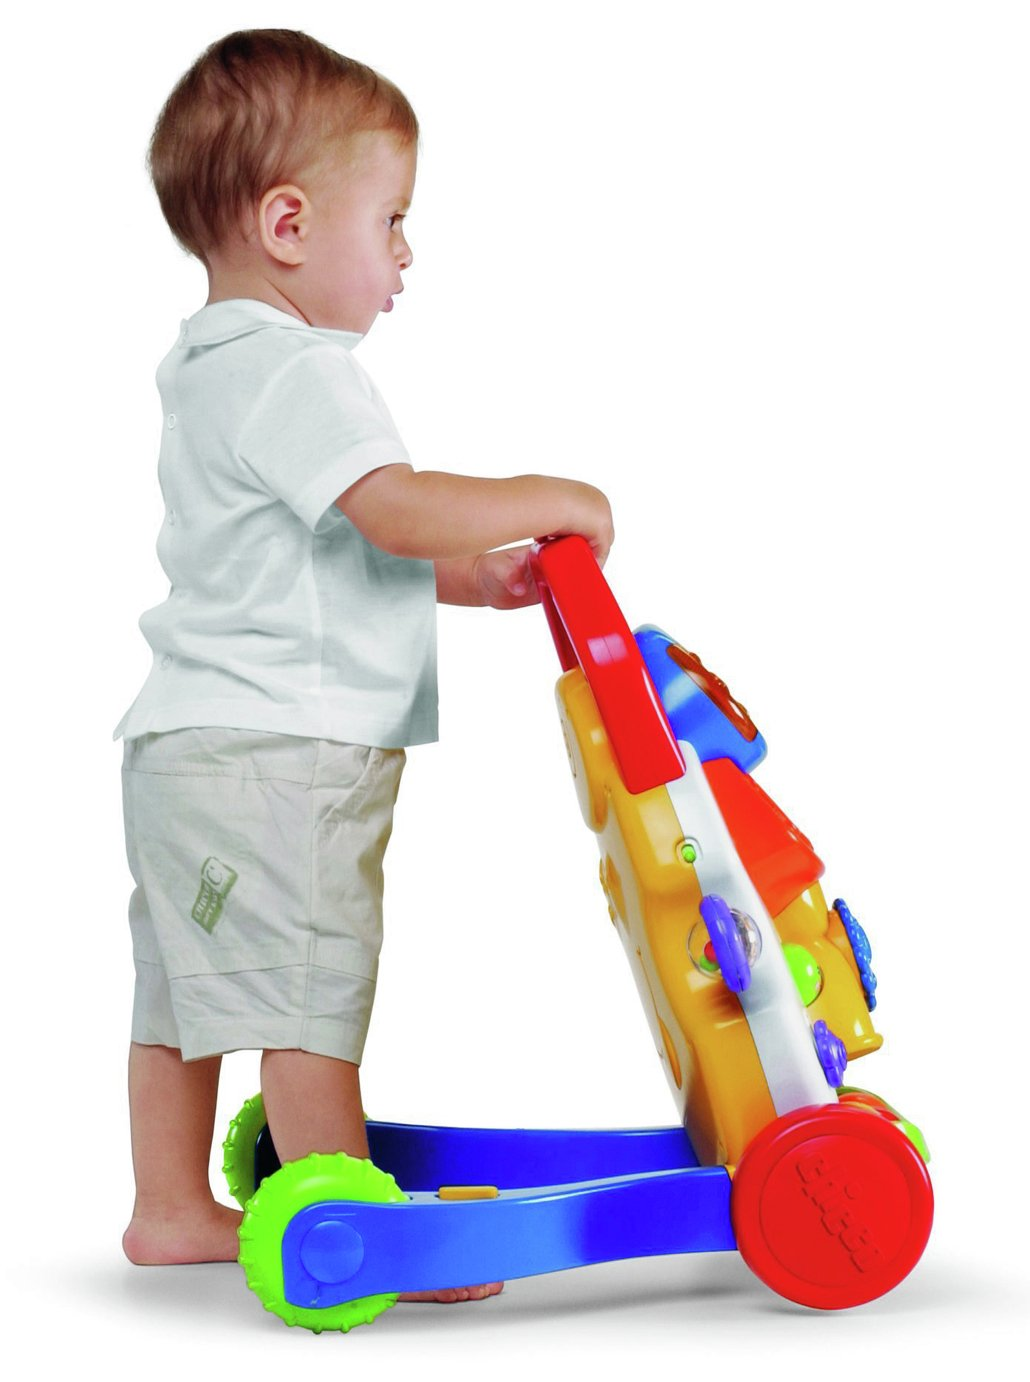 Chicco - Baby Steps Activity Walker from Chicco